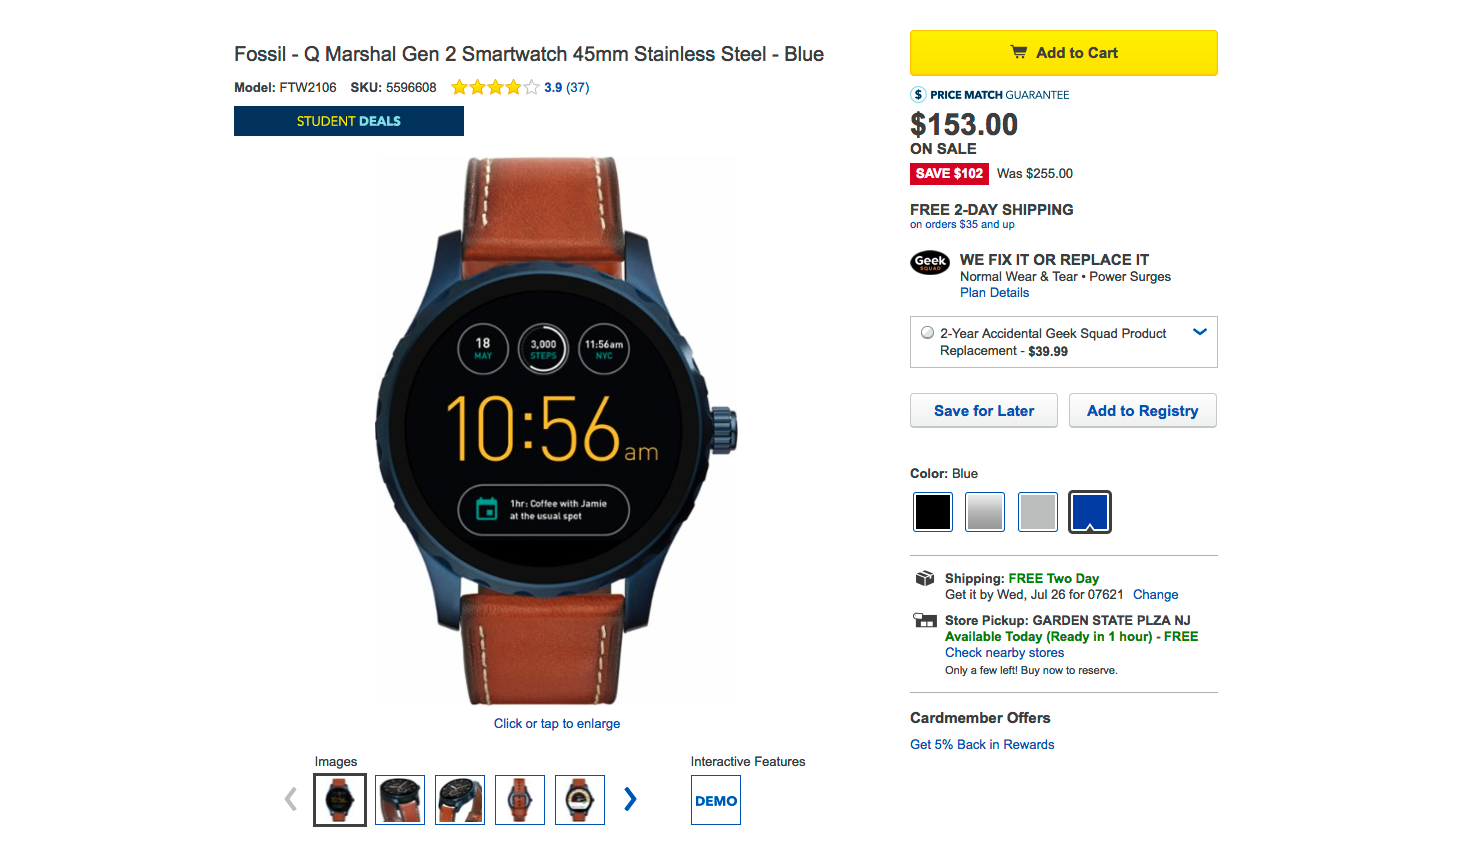 Deal Alert Best Buy Has 2nd Gen Fossil Q Marshal Wander And Fossils Watches Pack Decent Hardware But The Slightly Too High Prices Are Causing People To Turn Away Go For More Mainstream Options